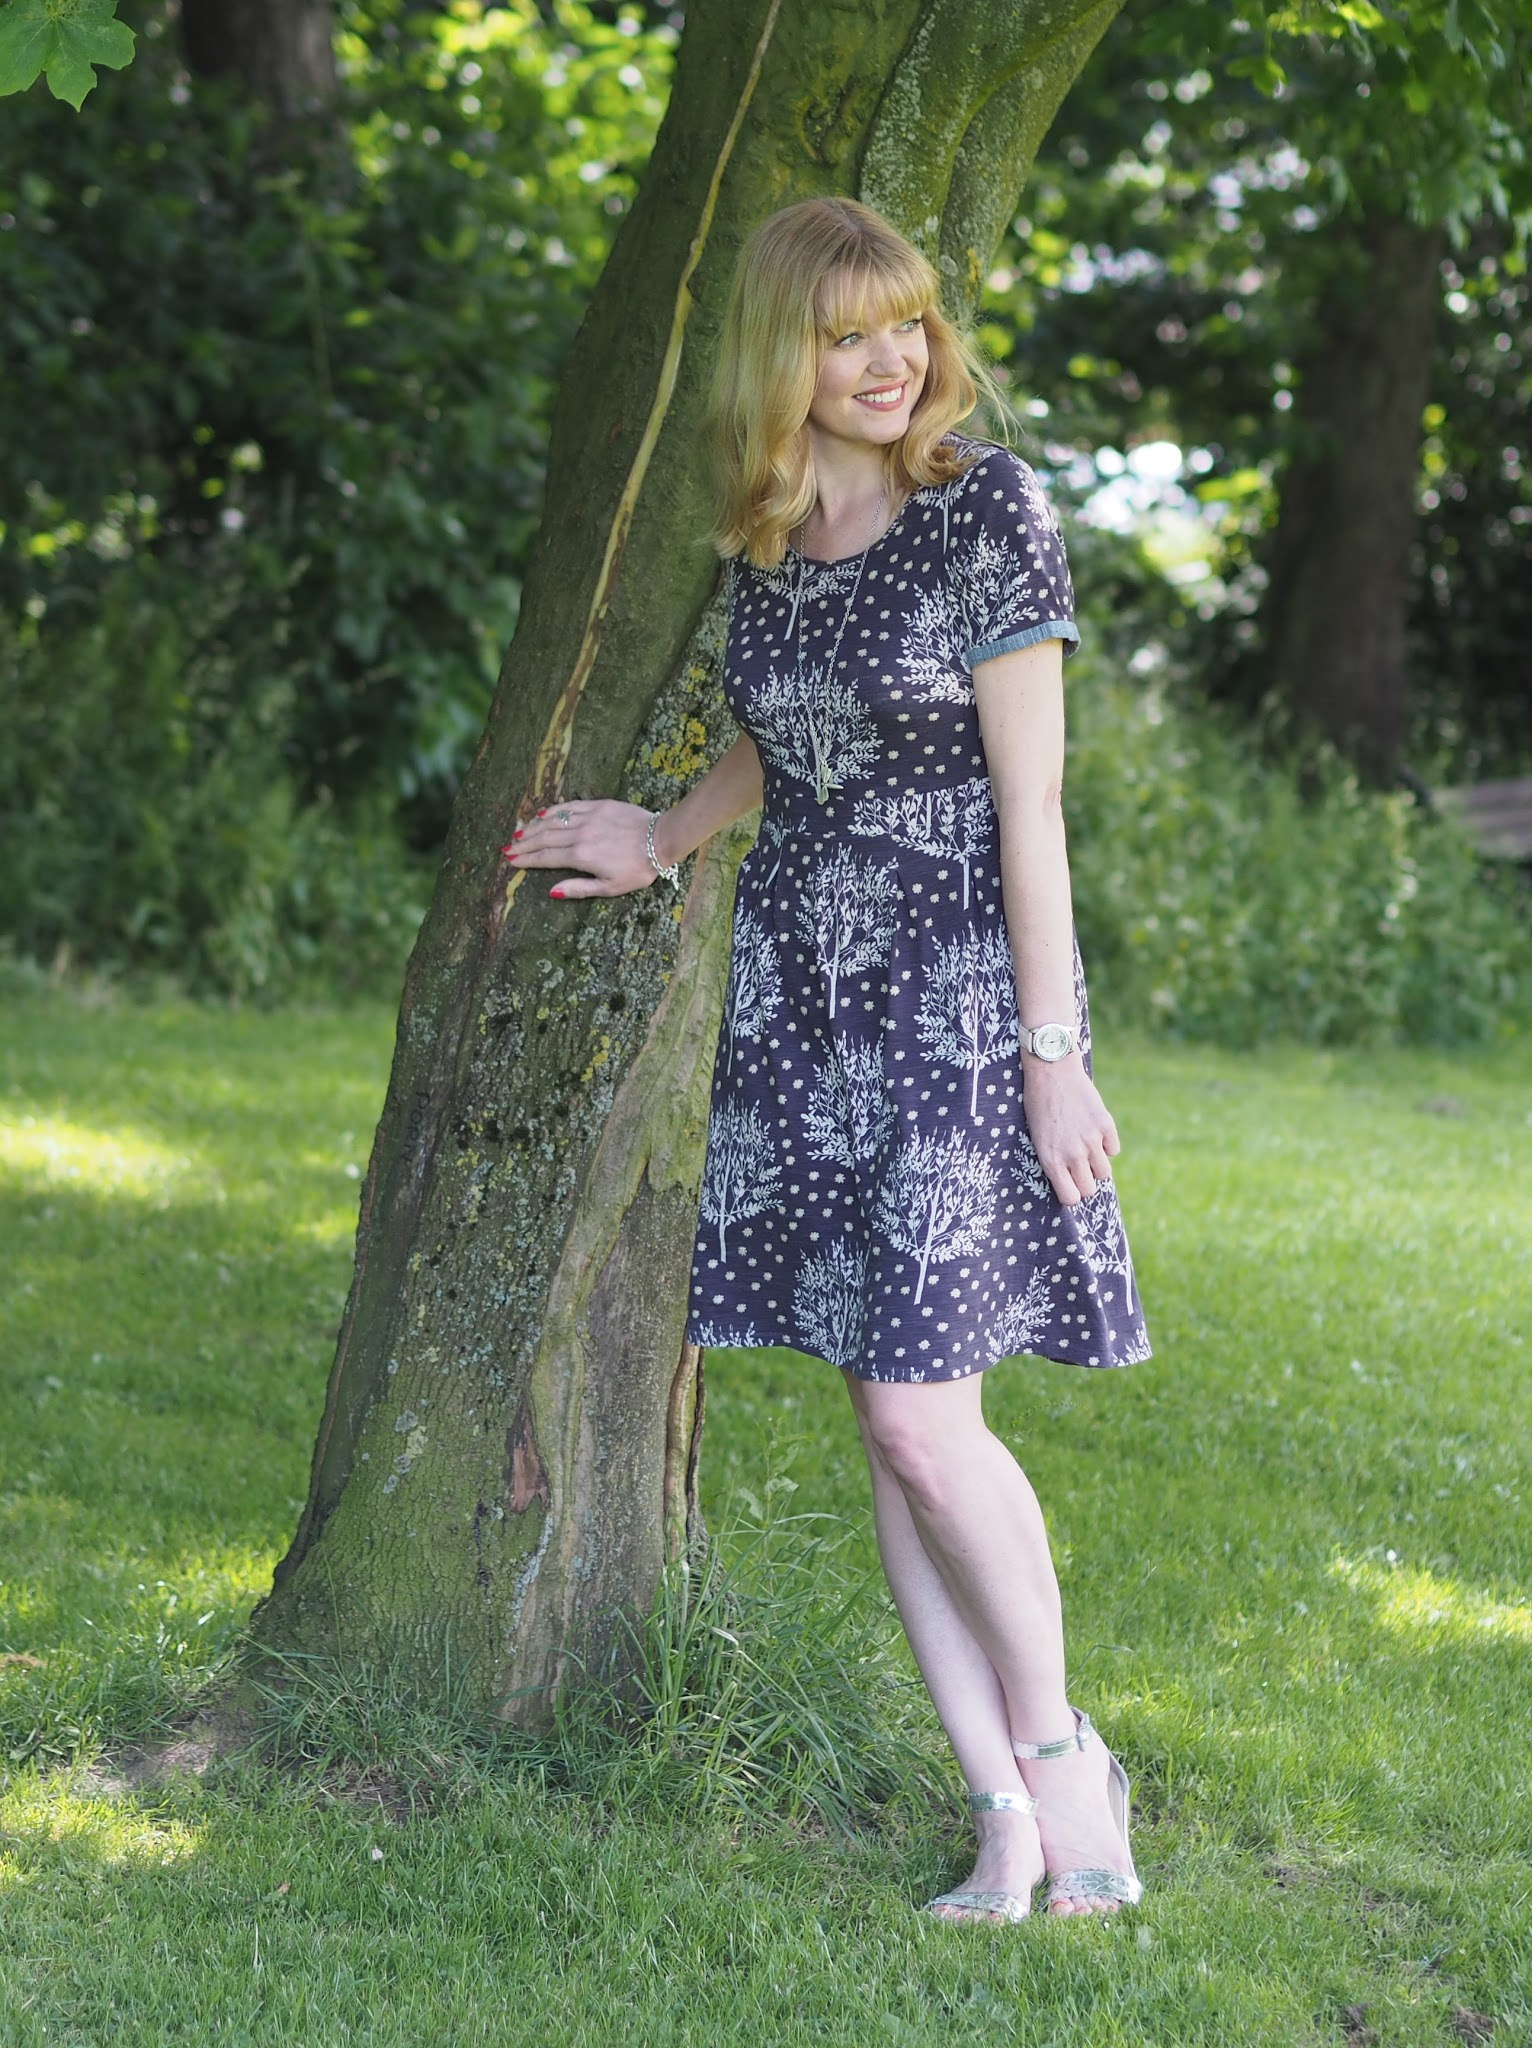 Braintree eco-fashion purple floral dress